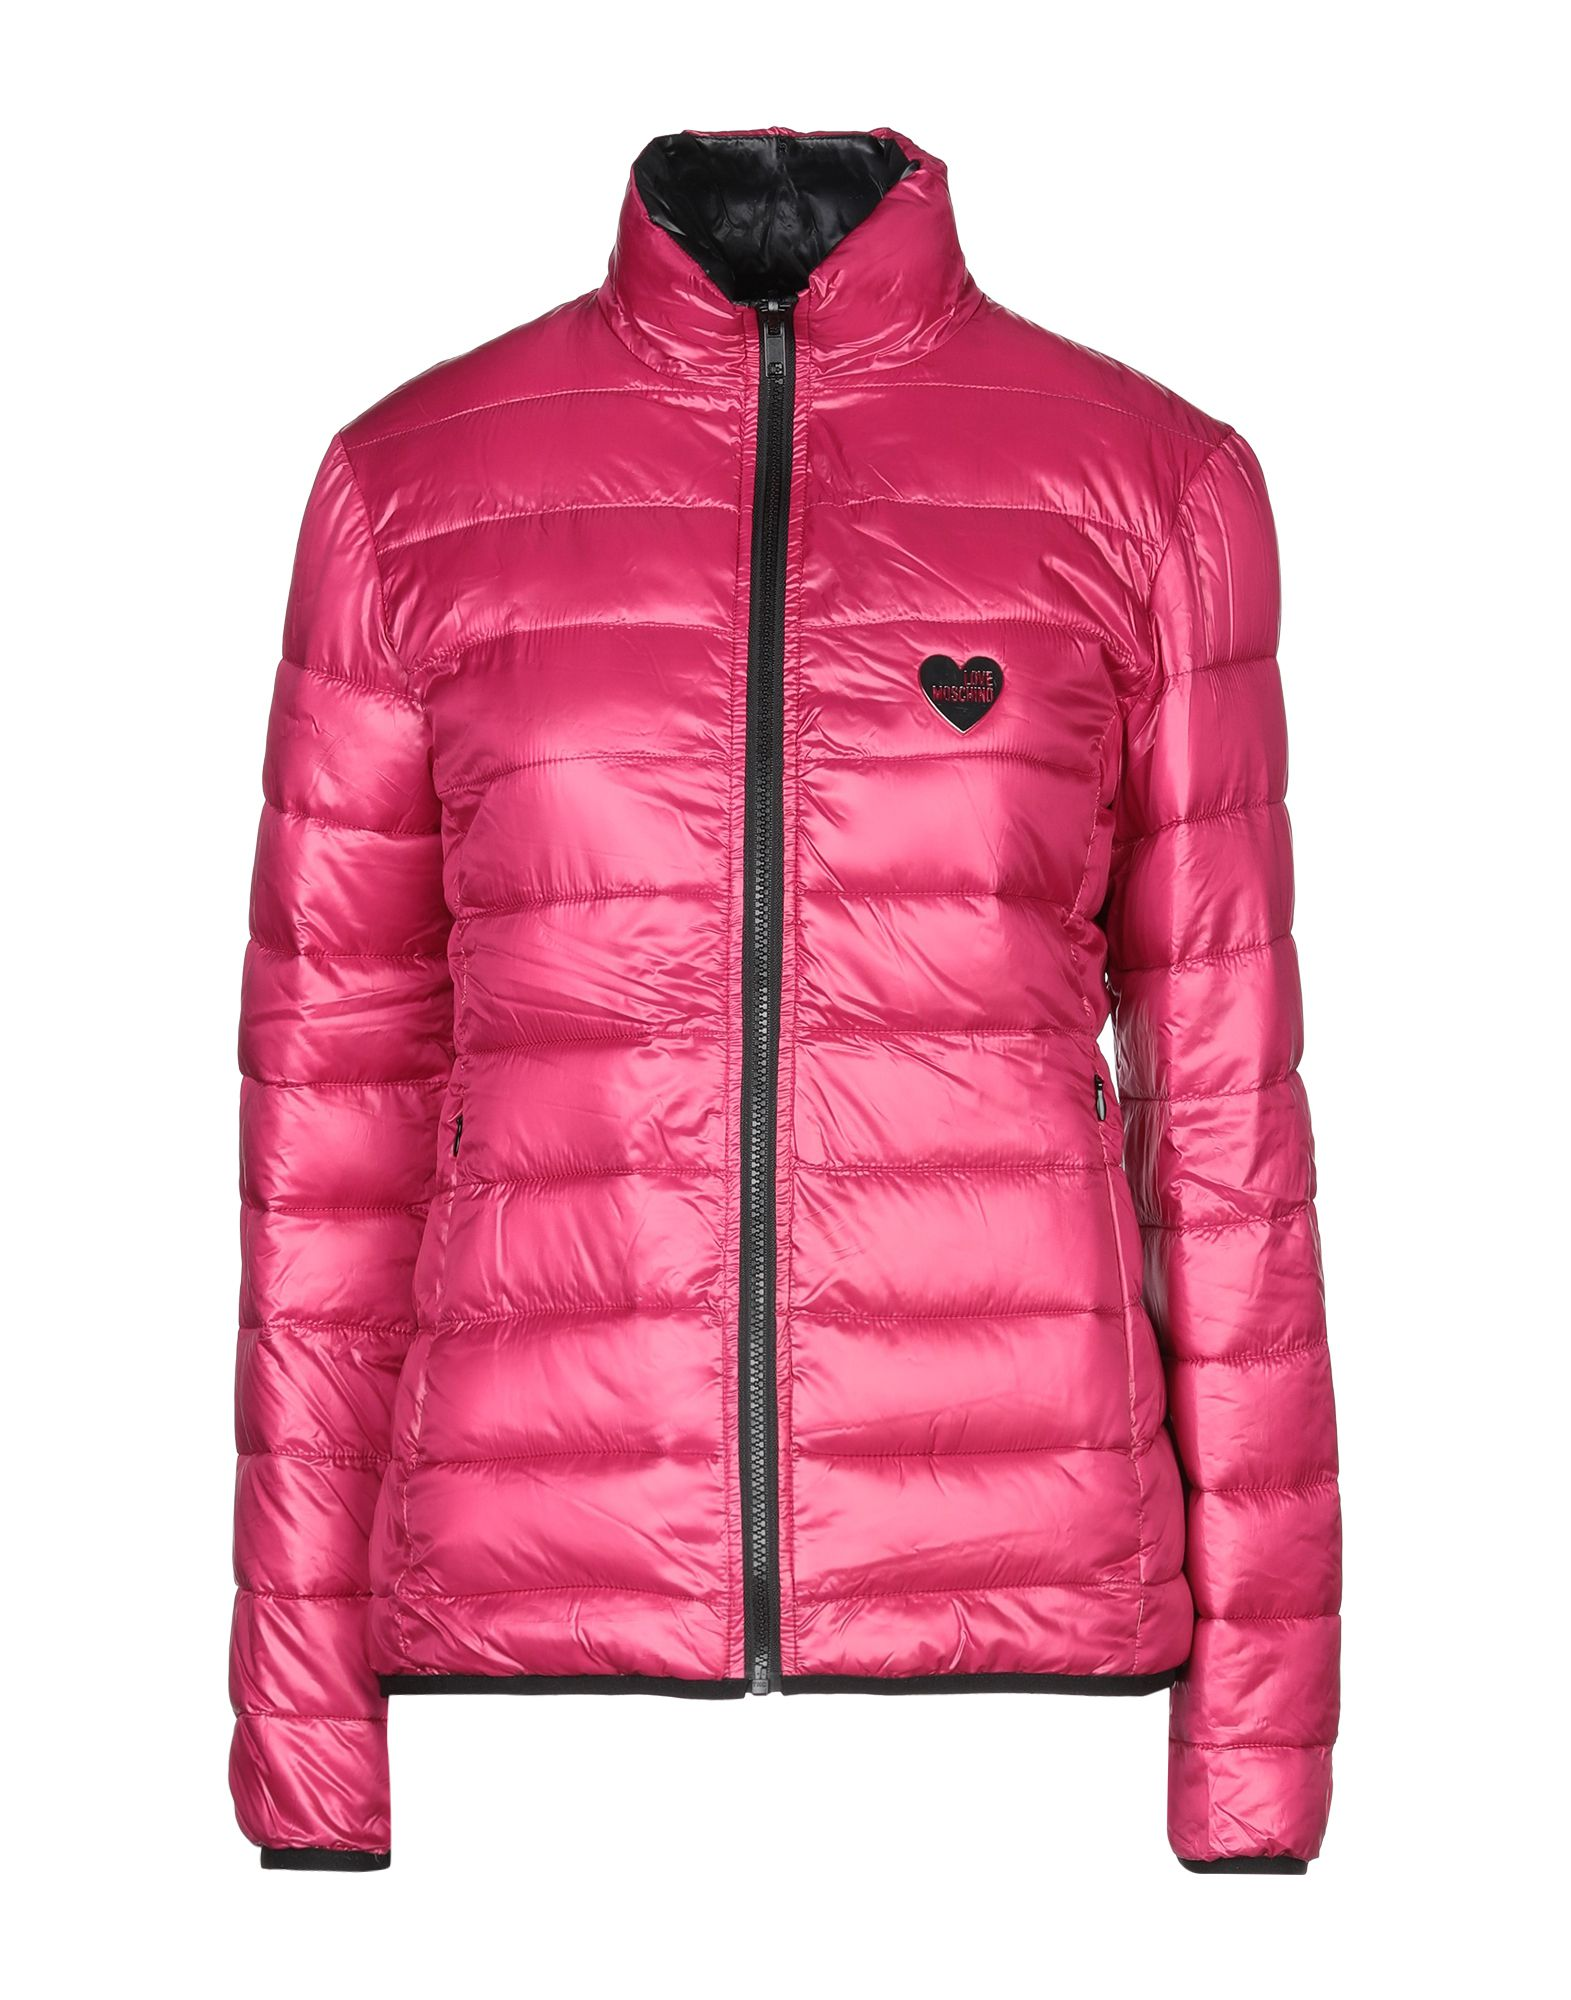 LOVE MOSCHINO Synthetic Down Jackets - Item 41967938